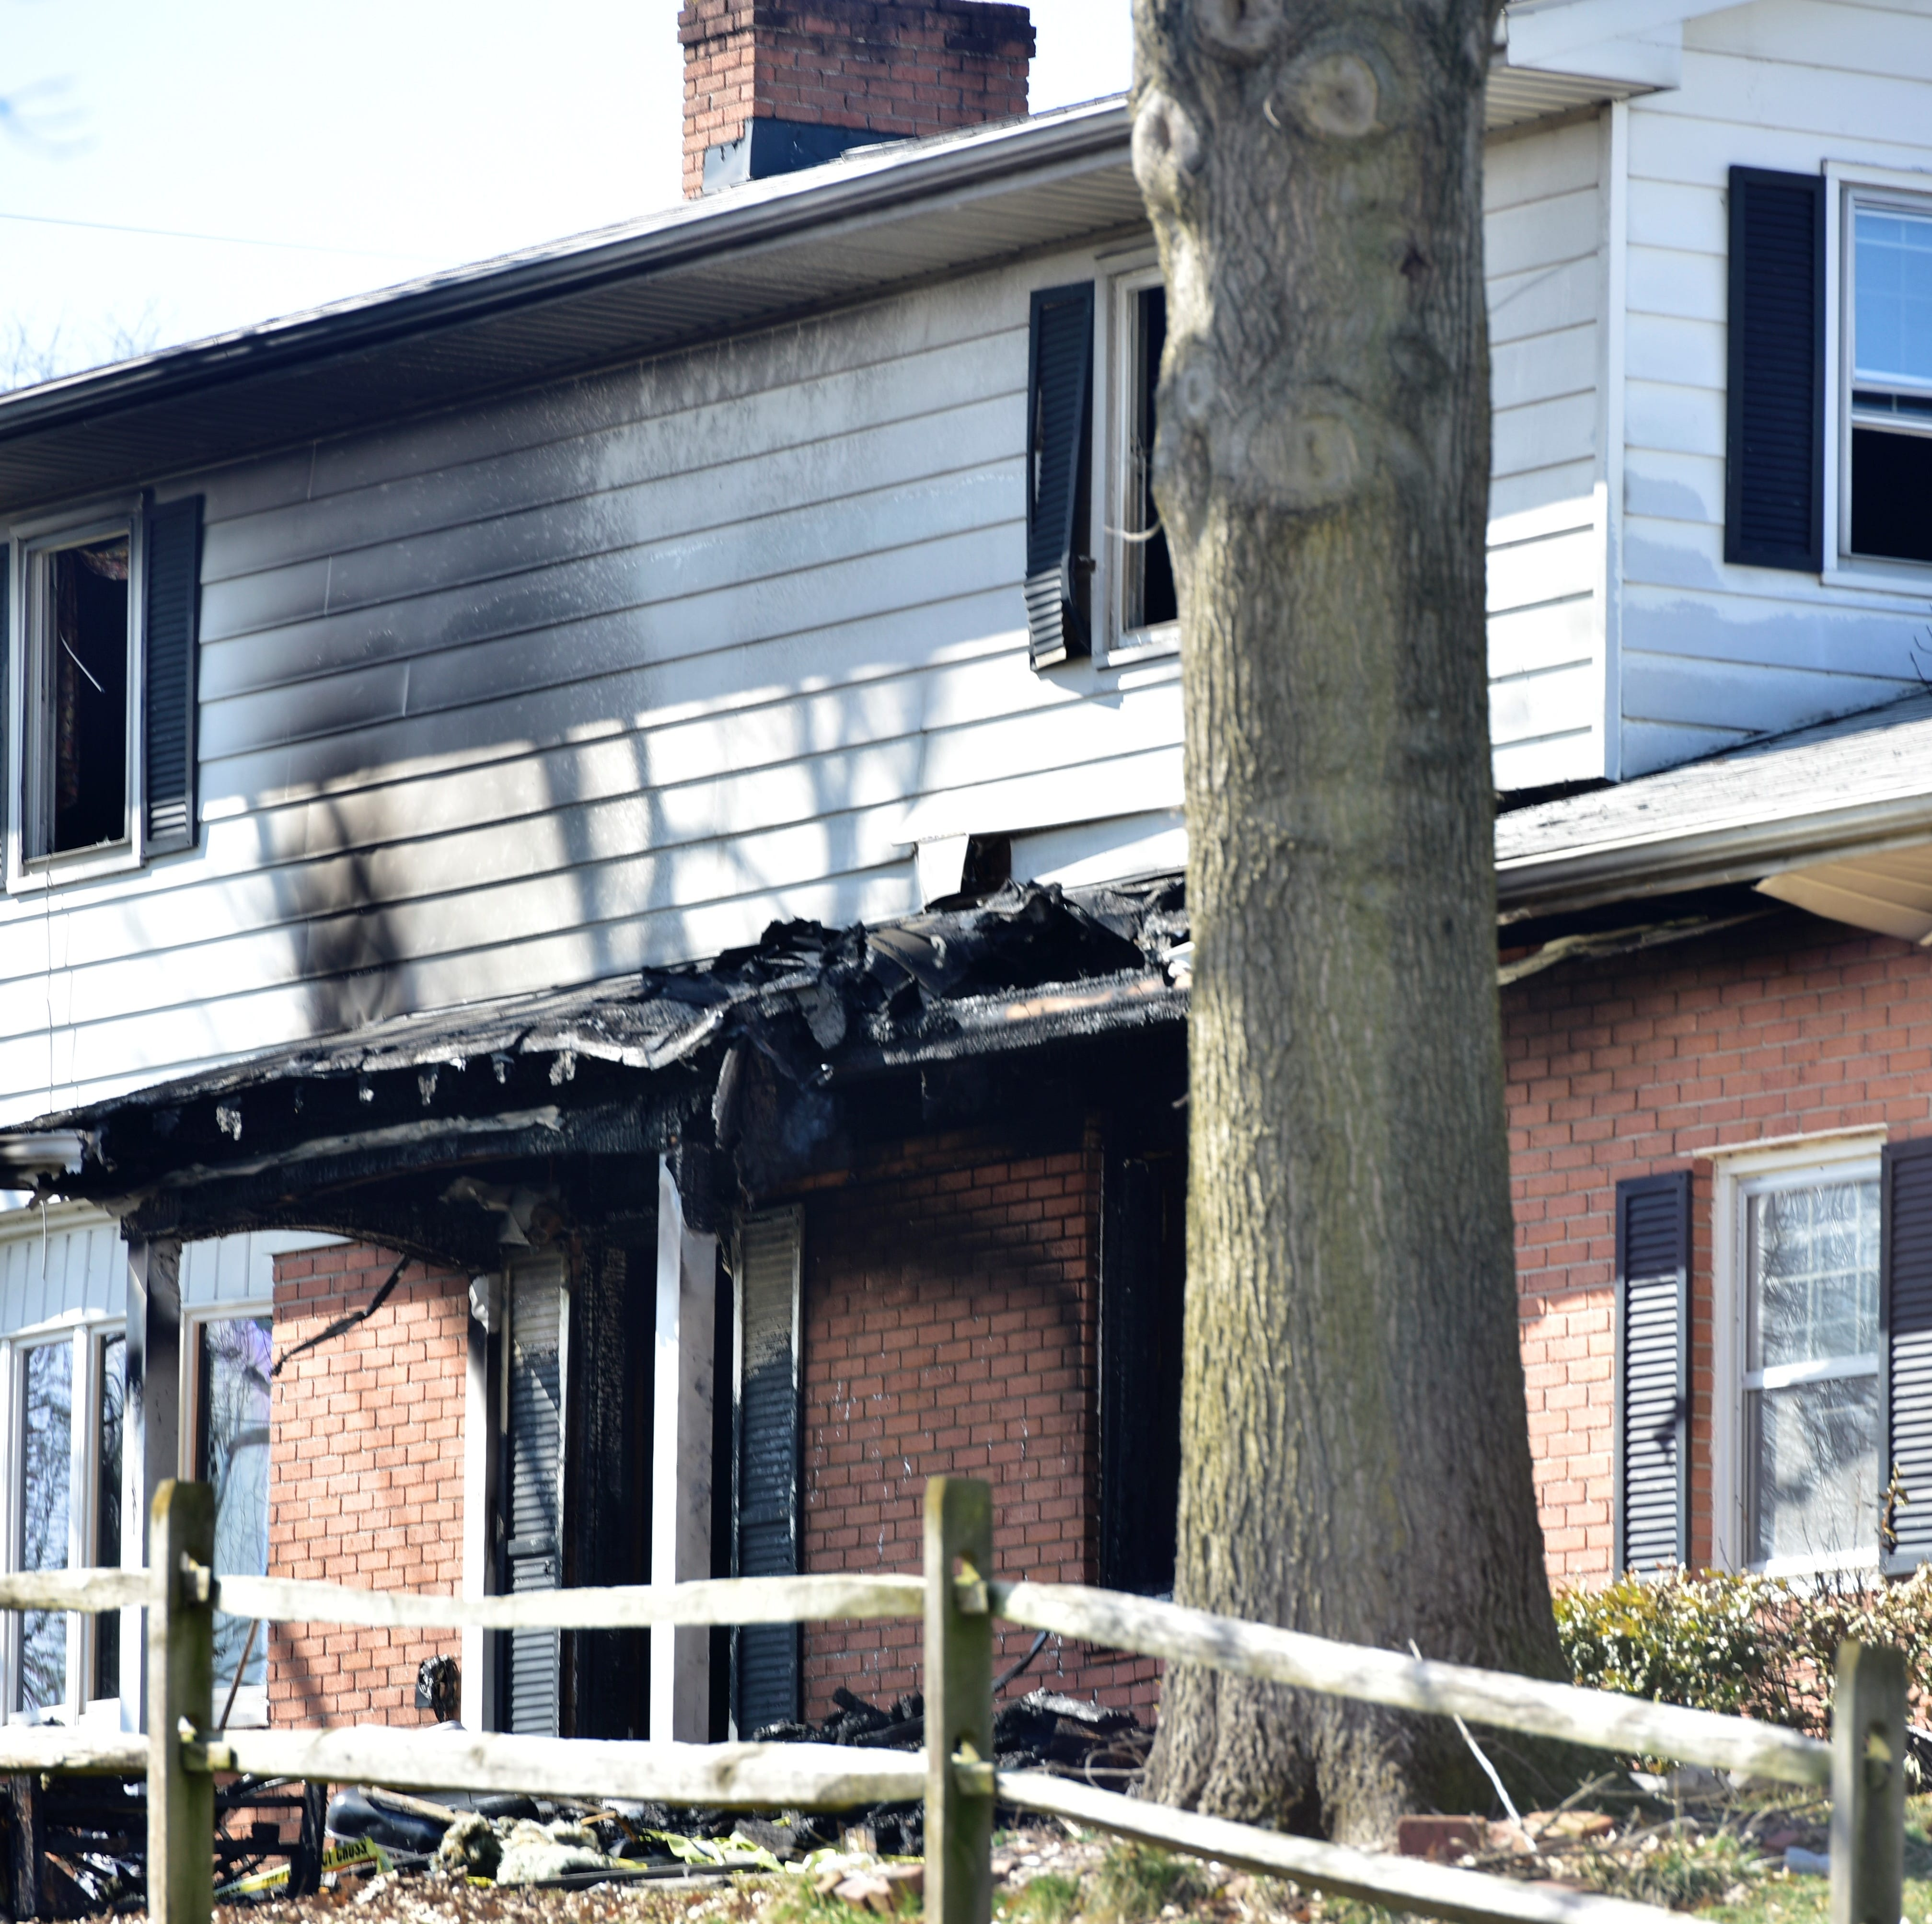 Residents injured after breaking out window to escape Chambersburg area house fire